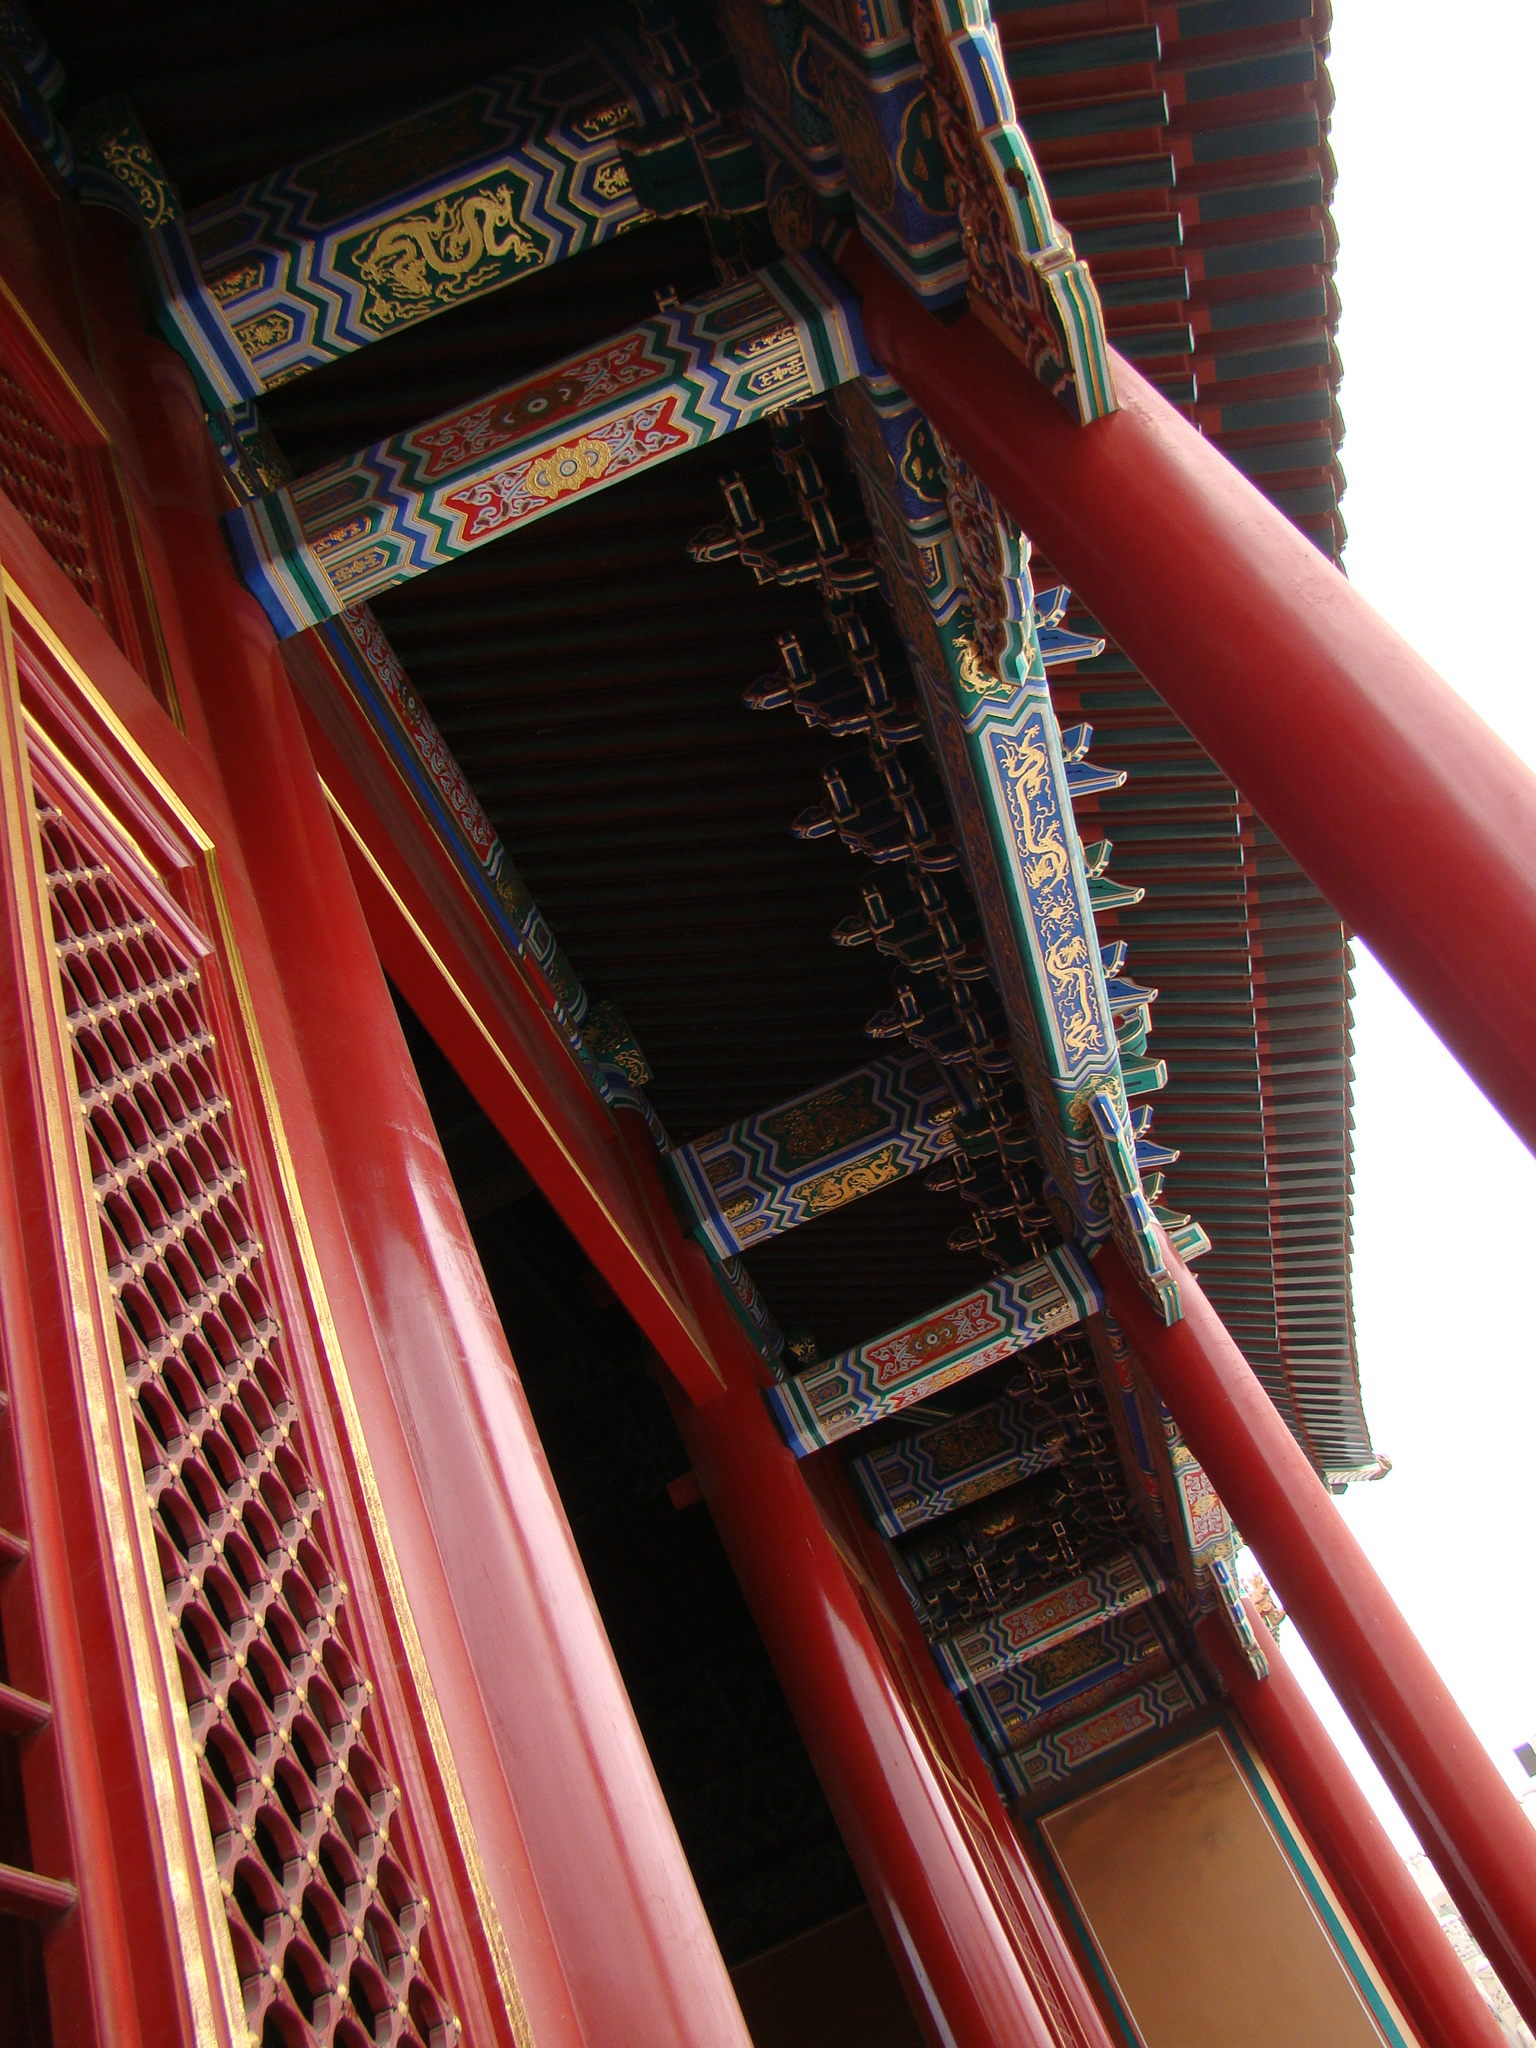 Stepping into Beijing's Forbidden City